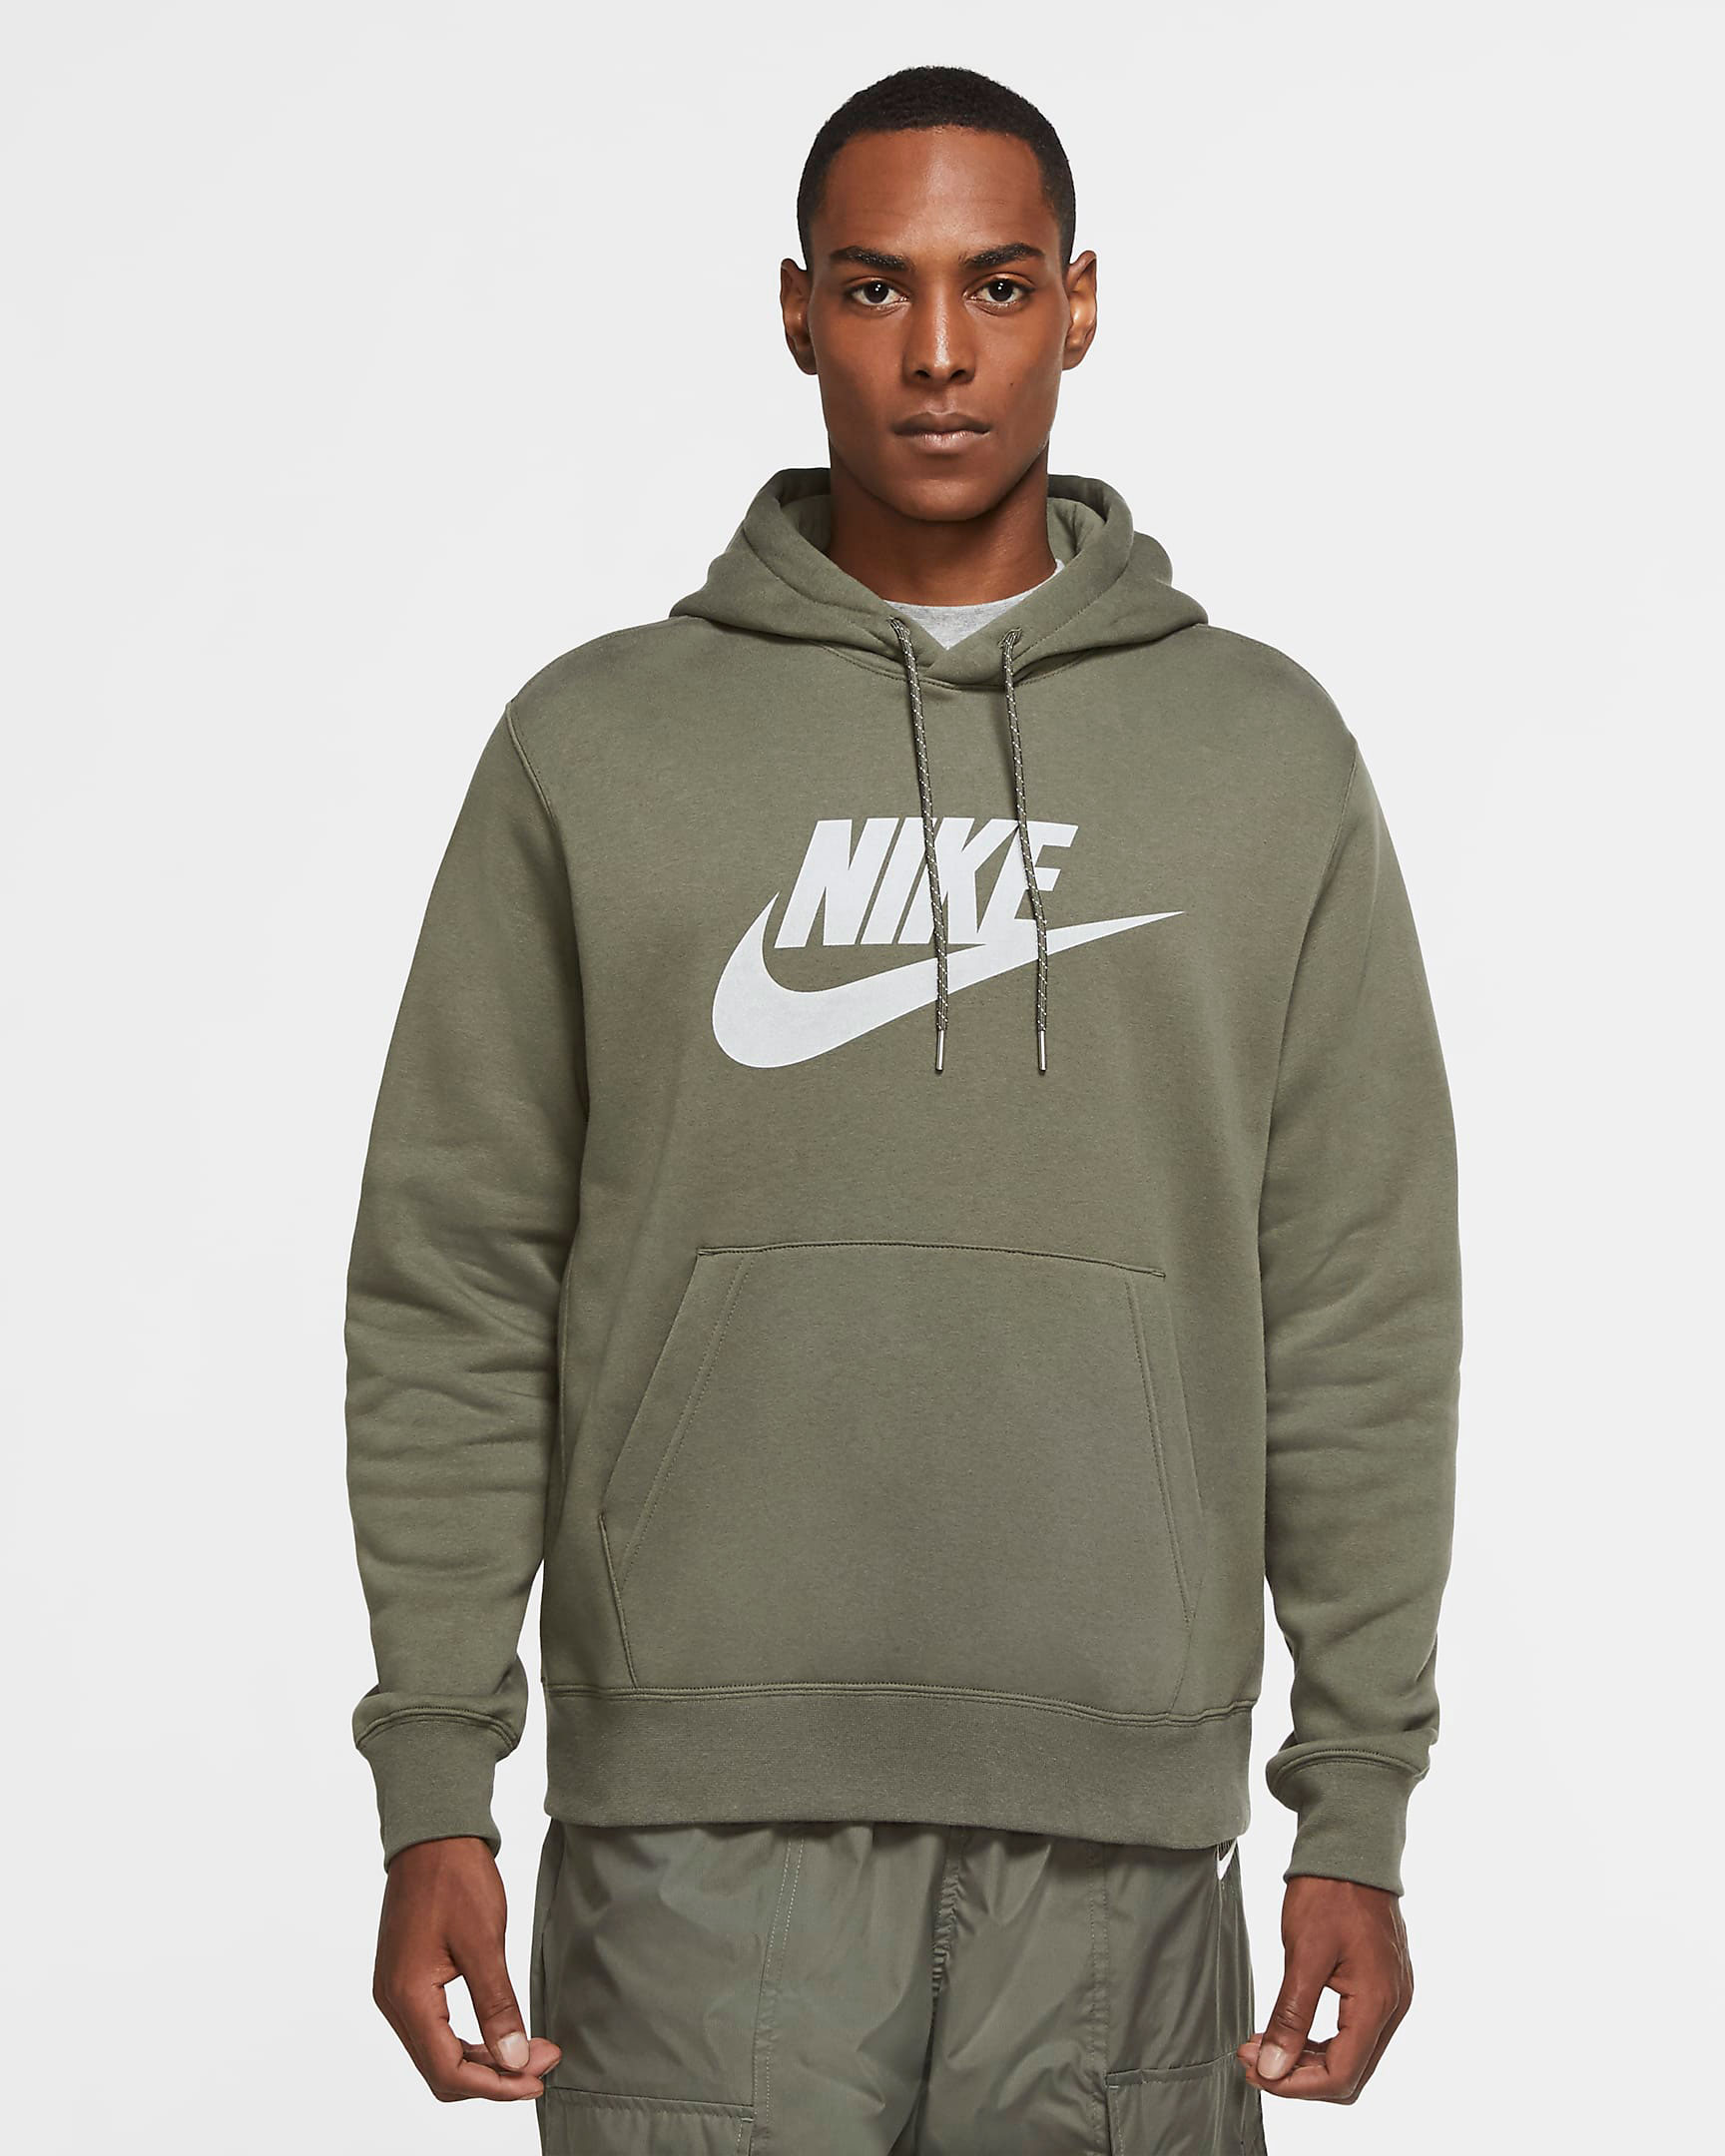 nike-club-fleece-twilight-marsh-green-reflective-hoodie